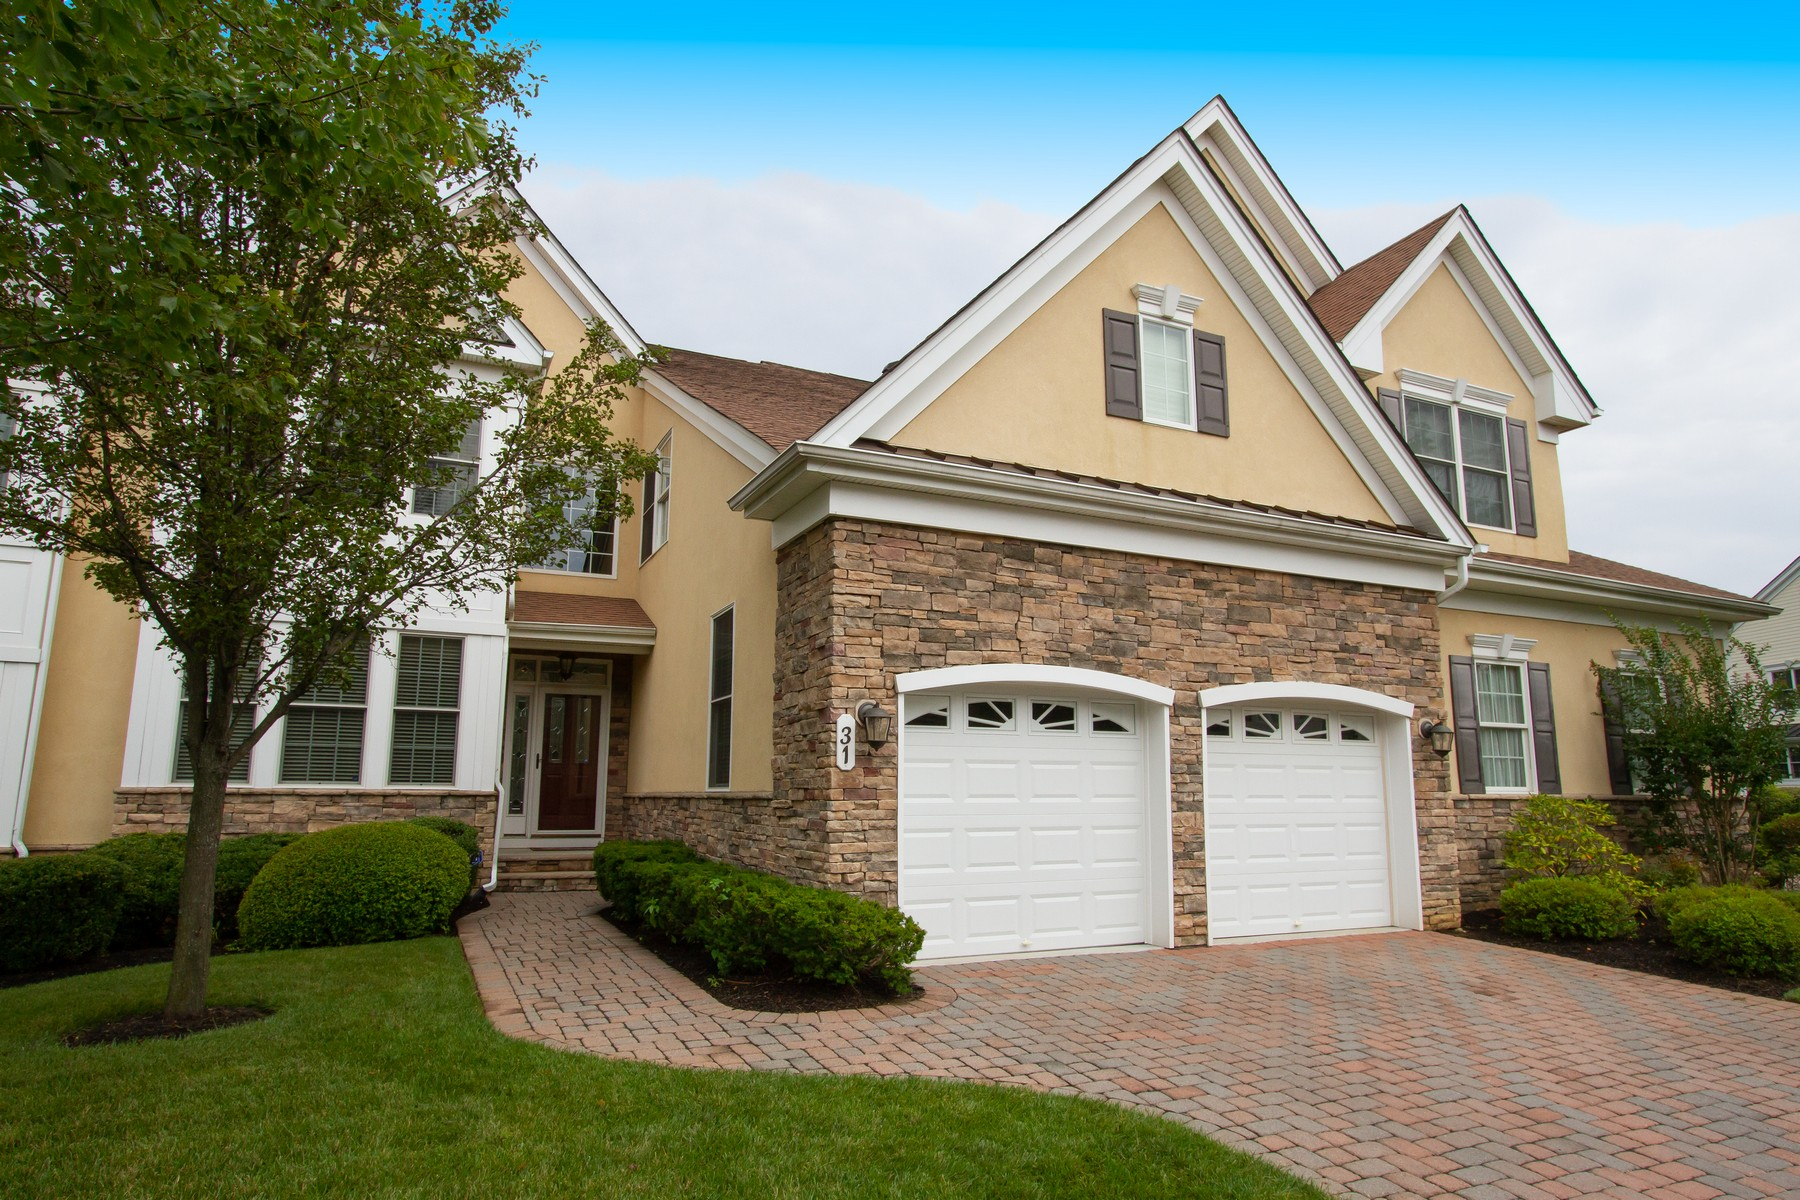 townhouses للـ Sale في Greenbriar Falls 31 Majestic Dr, Tinton Falls, New Jersey 07724 United States